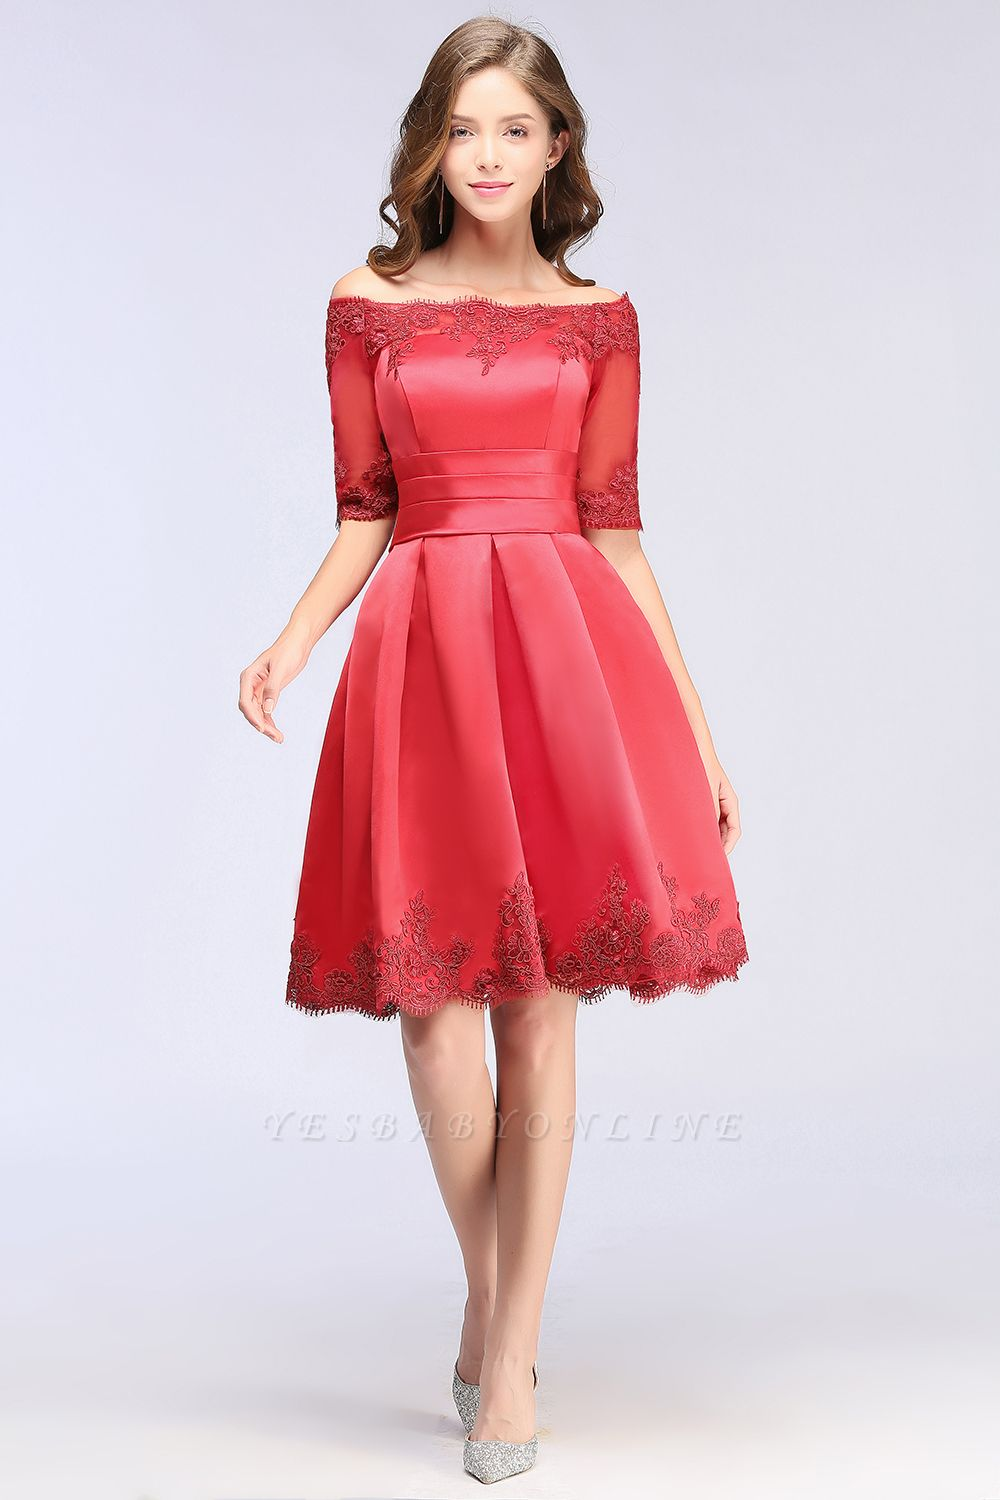 Cheap Chic Half Sleeve Lace-up Off-shoulder Lace Appliques Short Prom Dress in Stock